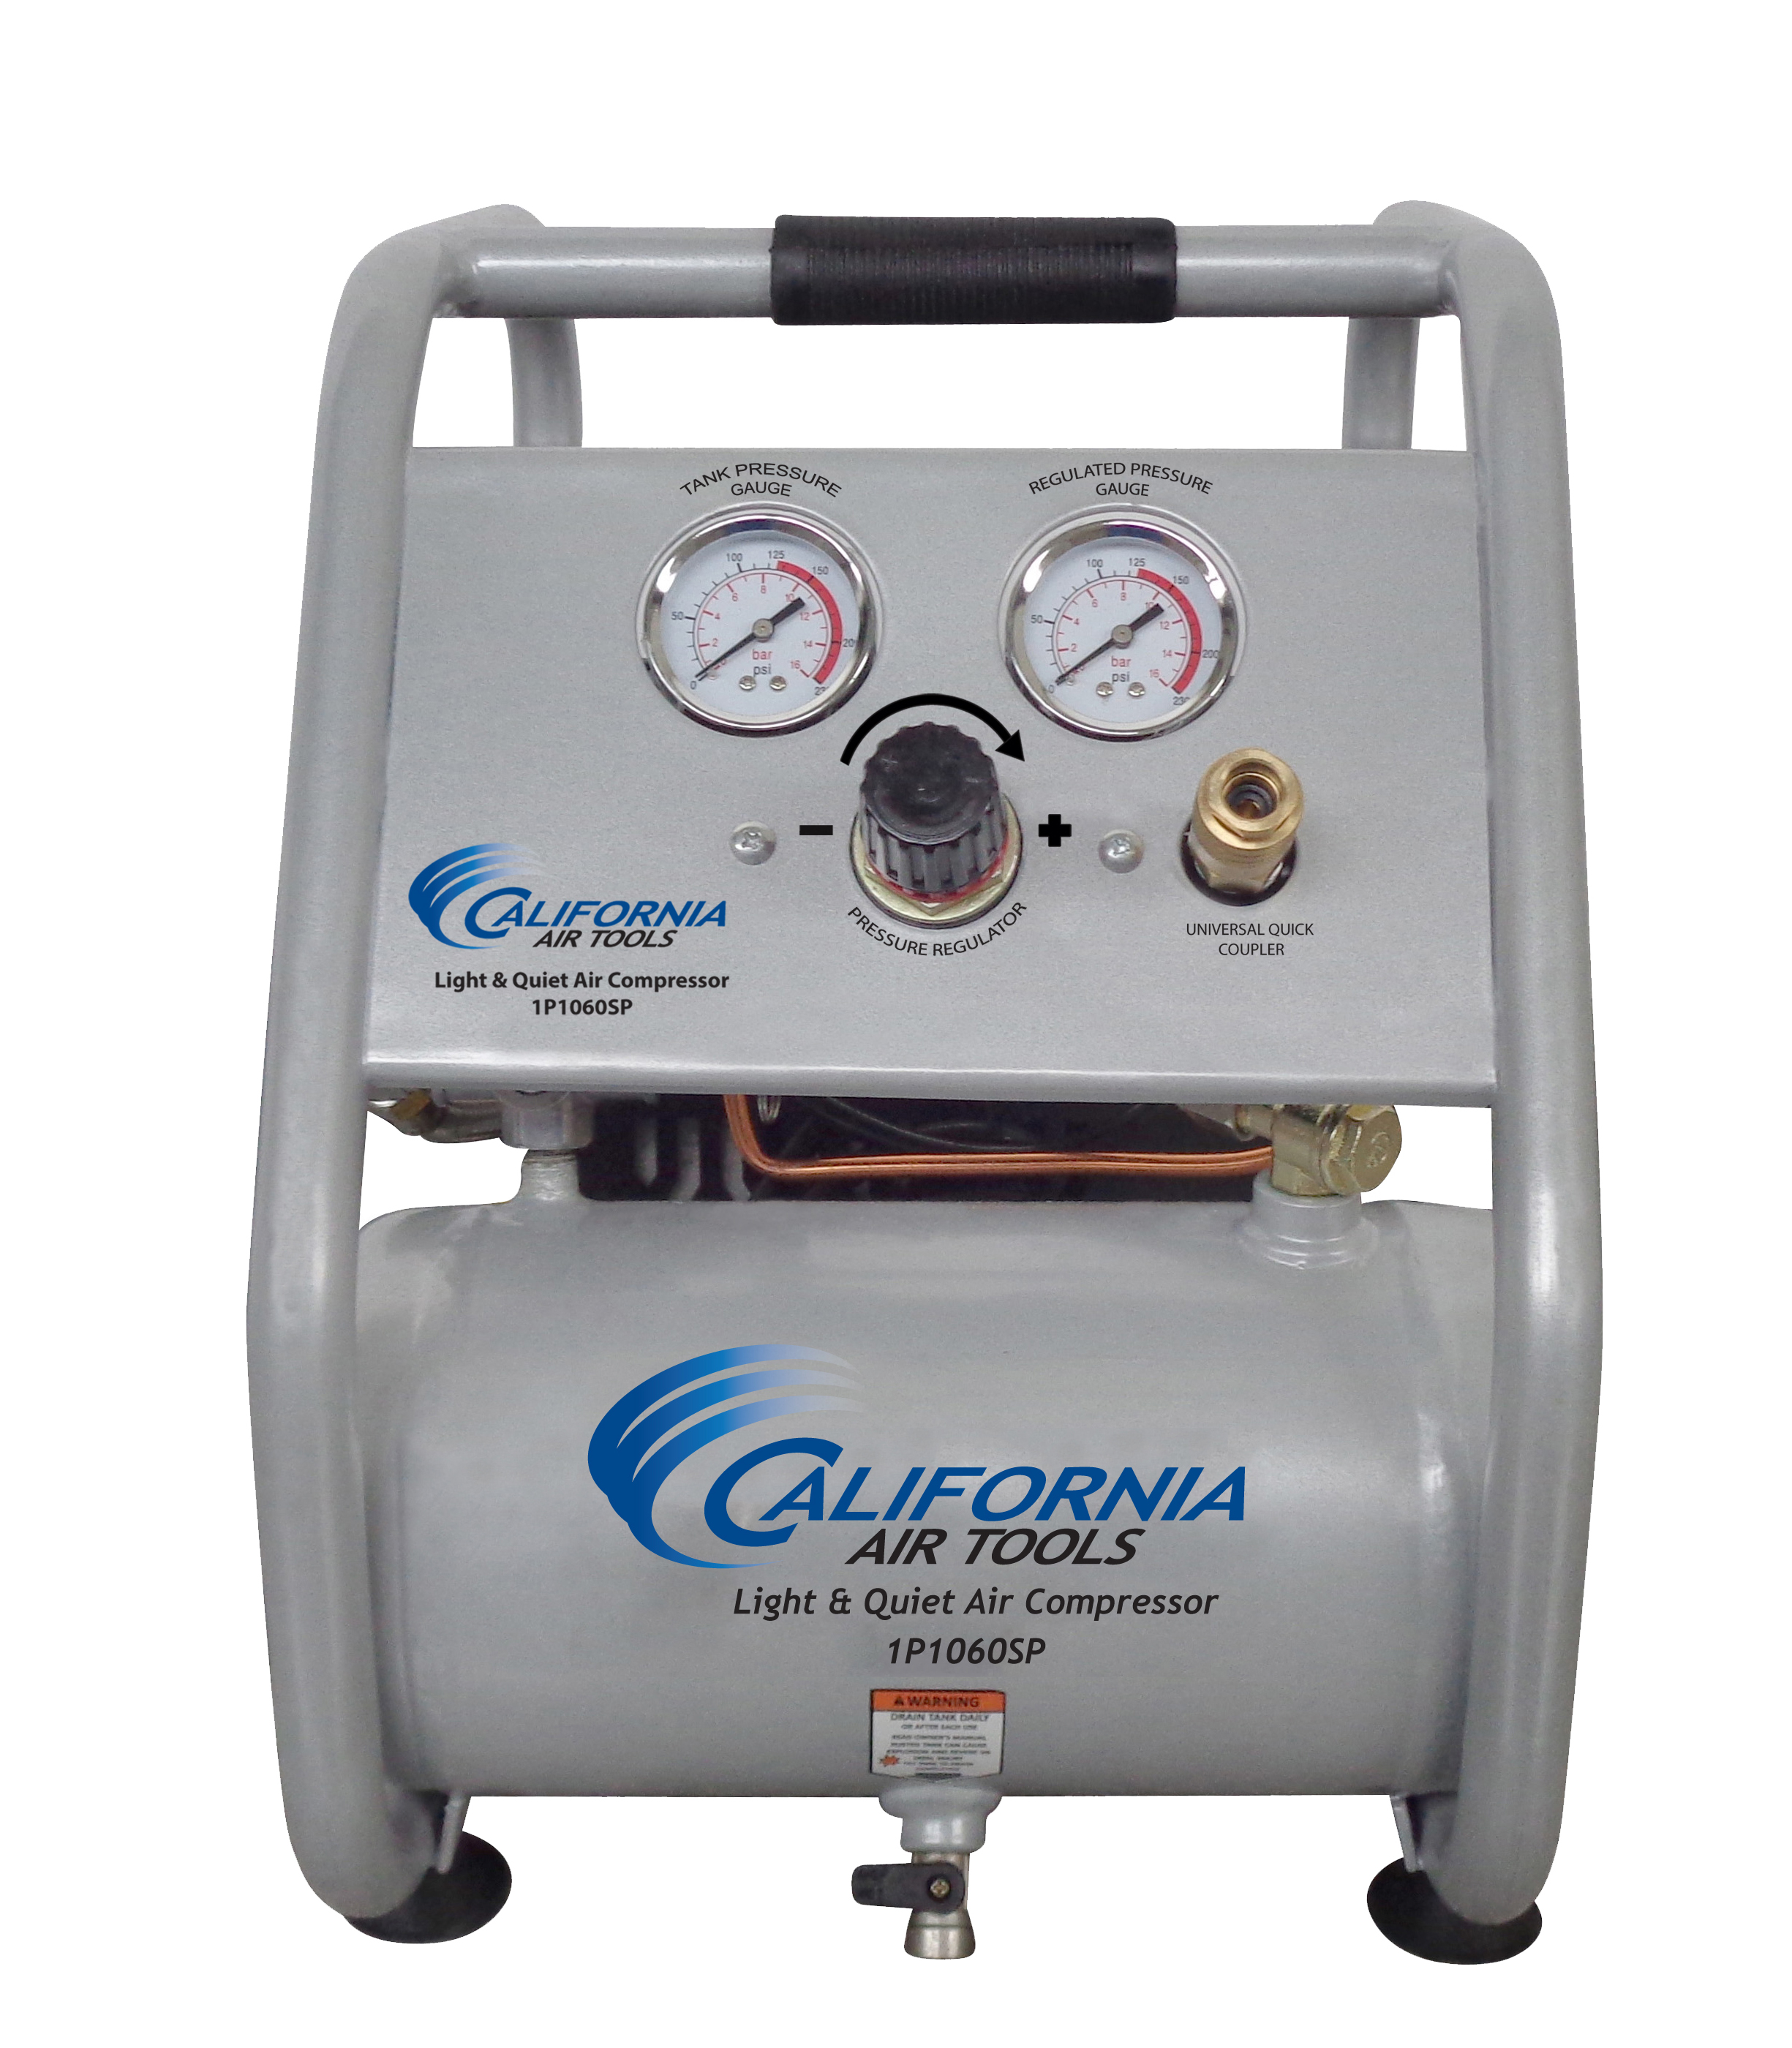 California Air Tools 1P1060SP Light & Quiet .6 Hp, 1.0 Gal. Steel Tank Portable Air Compressor